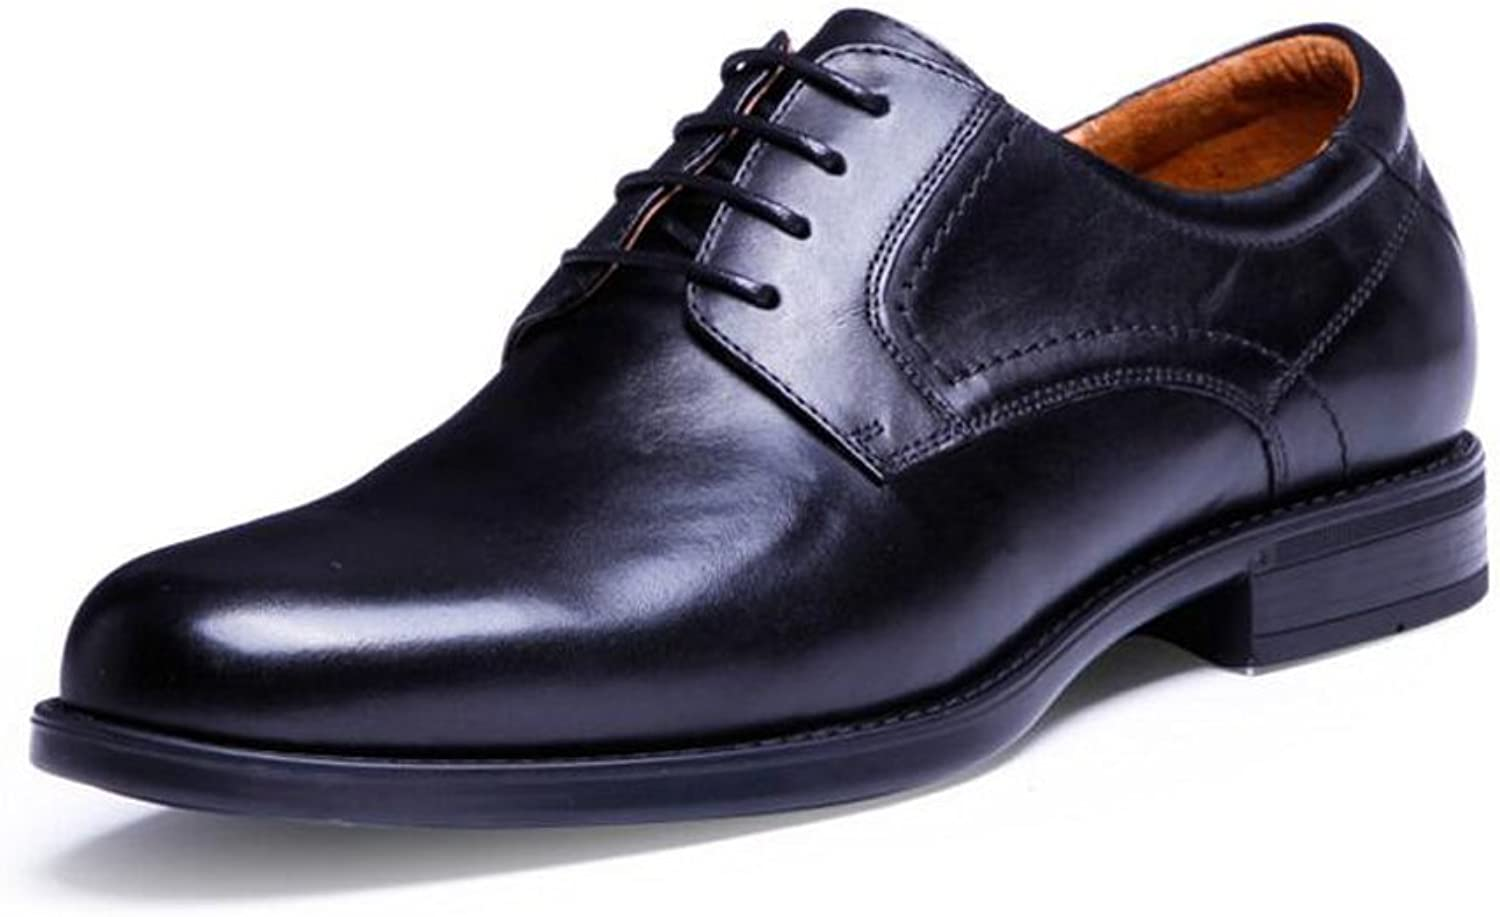 SXZHSM Men's Toe Layer Leather Wedding shoes Dress shoes with Breathable British Pointed Fashion Business shoes 39-43 Yards Men's Leather Boots (color   Black, Size   42 EU)